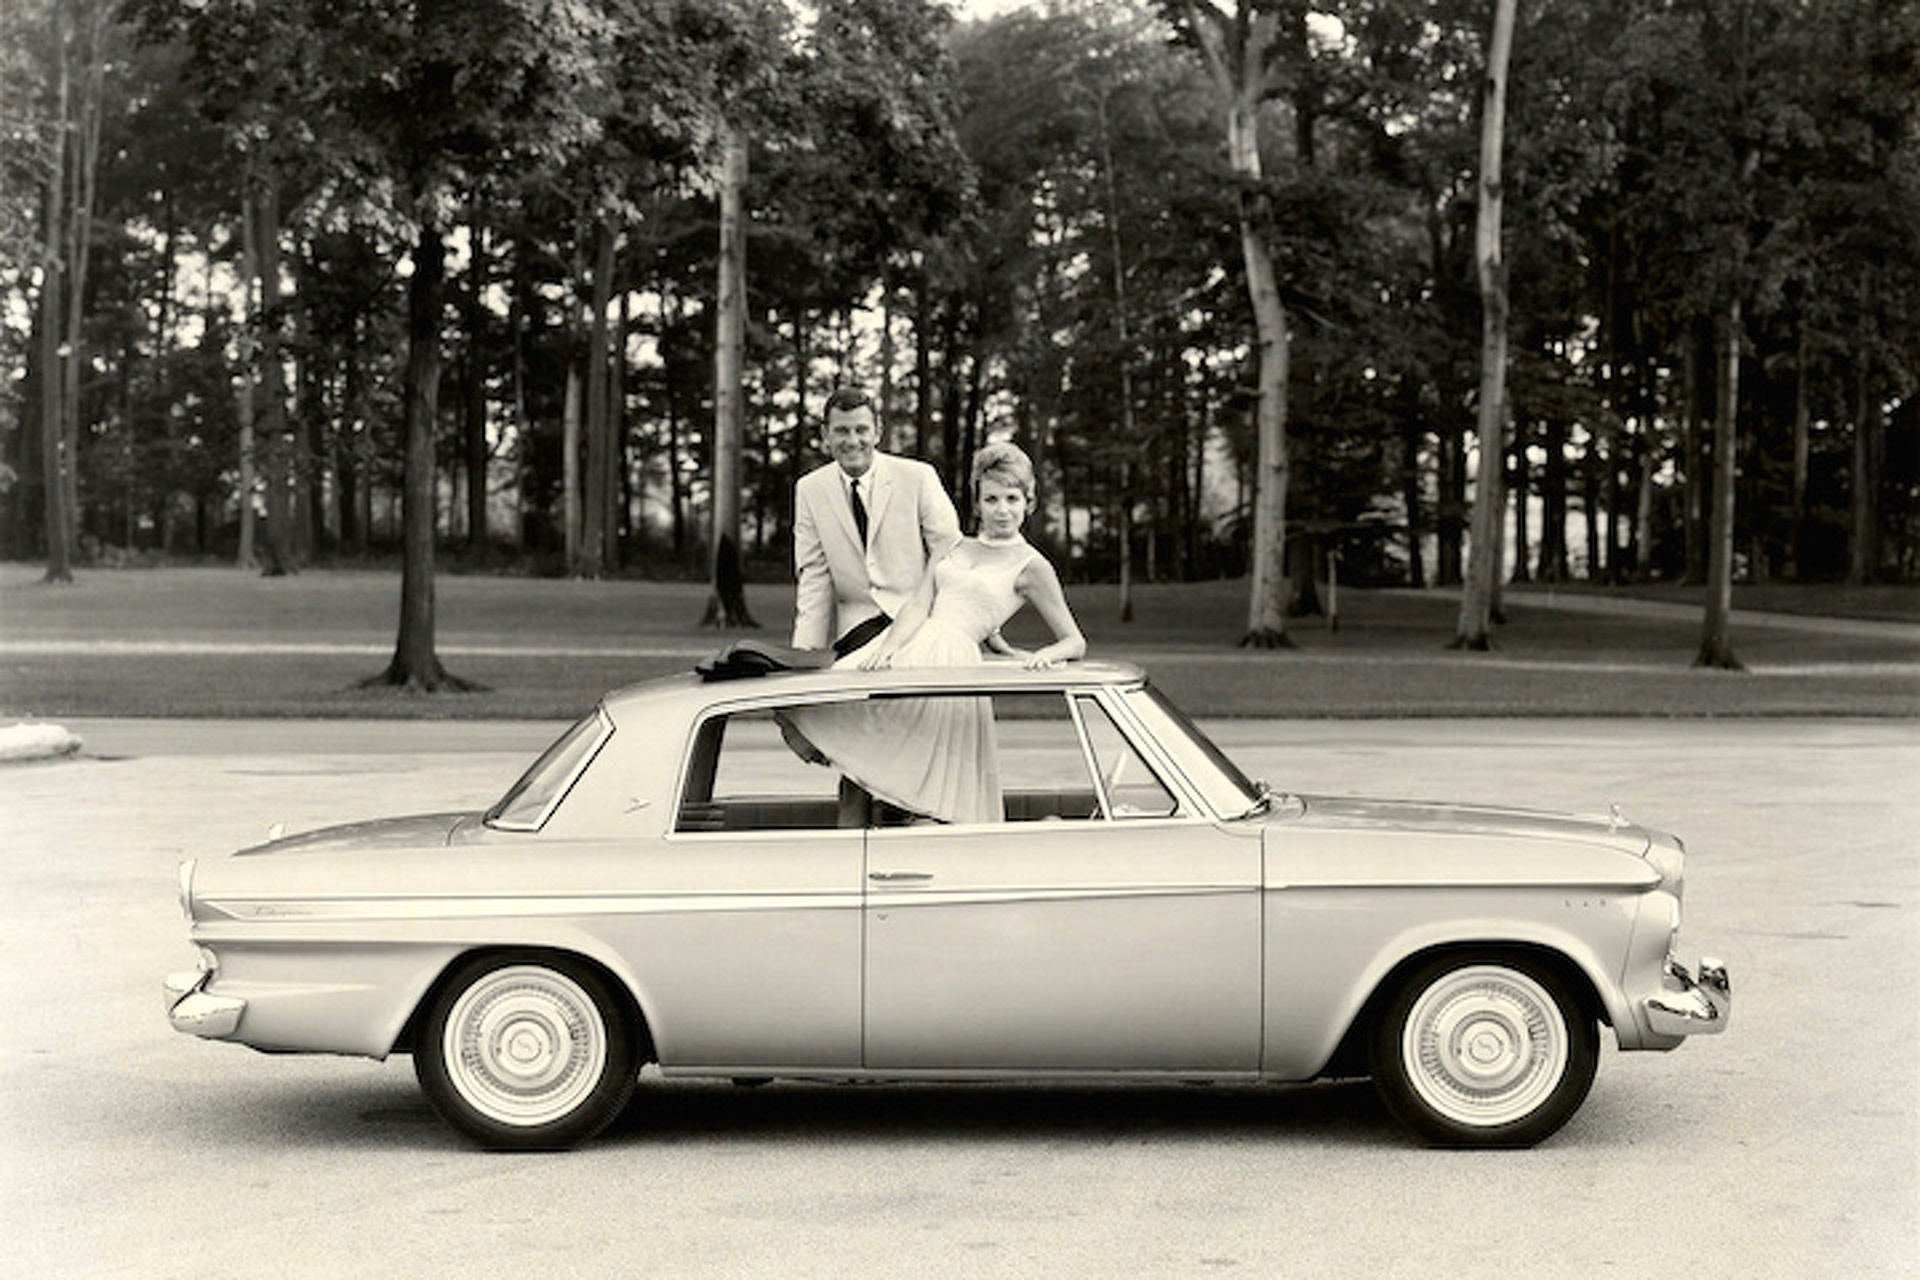 1963 Studebaker Lark Daytona: Late in Life, But Early in the Game